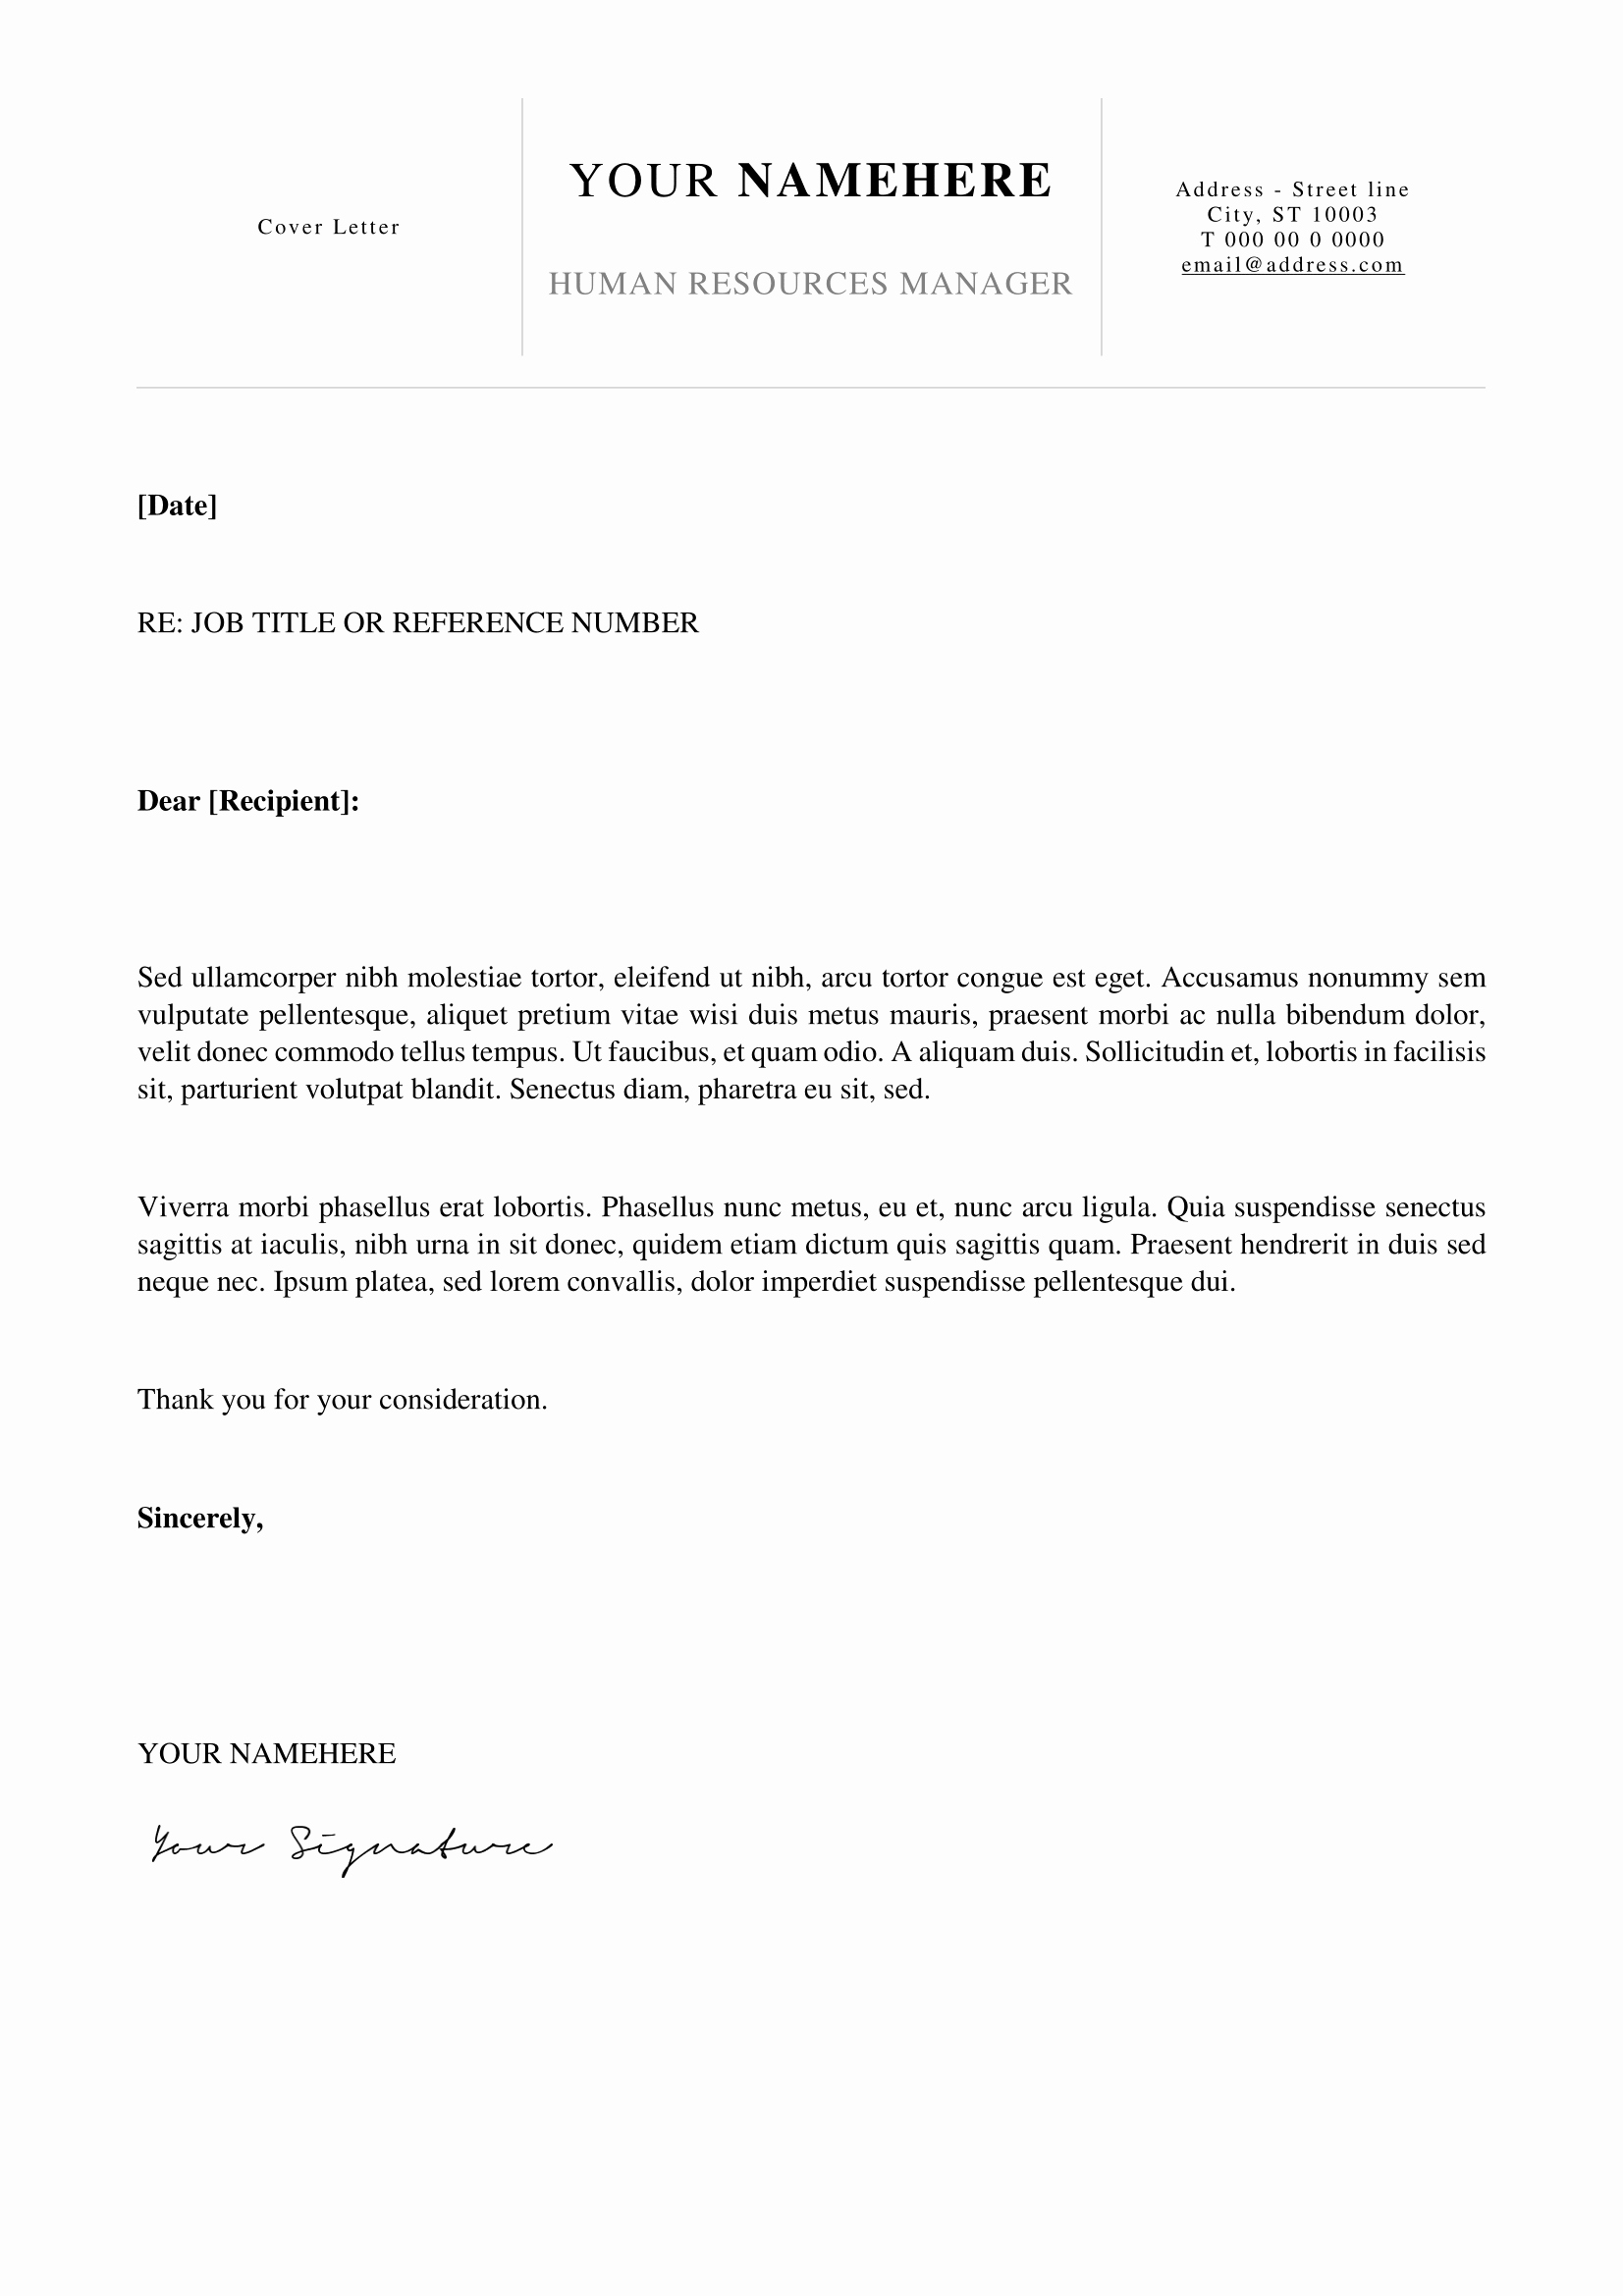 Templates for Cover Letters Free Elegant Kallio Simple Resume Word Template Docx